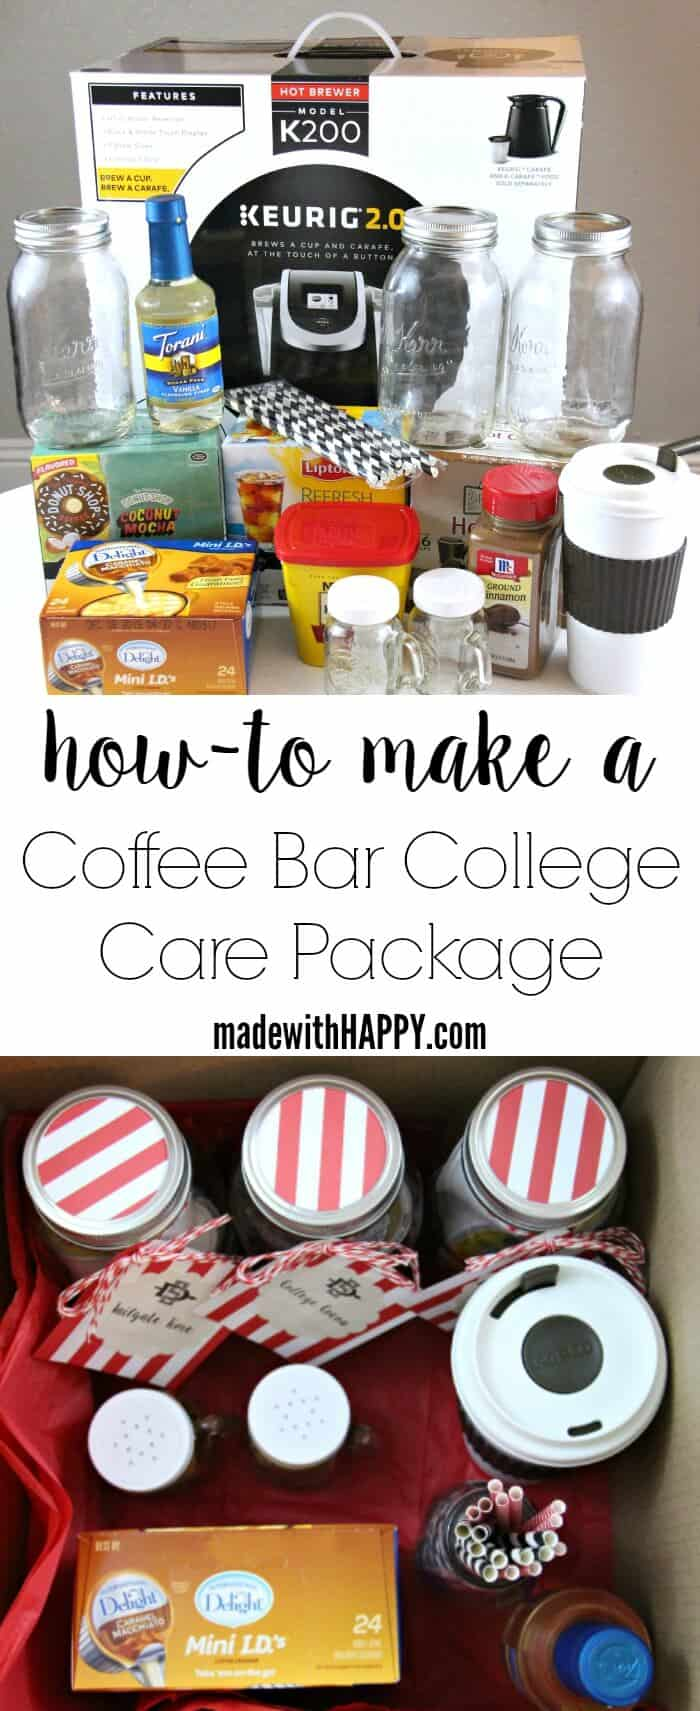 Coffee Care Package   How to build a coffee bar   College Dorm Setup   College Care Package Gift Ideas   www.madewithHAPPY.com